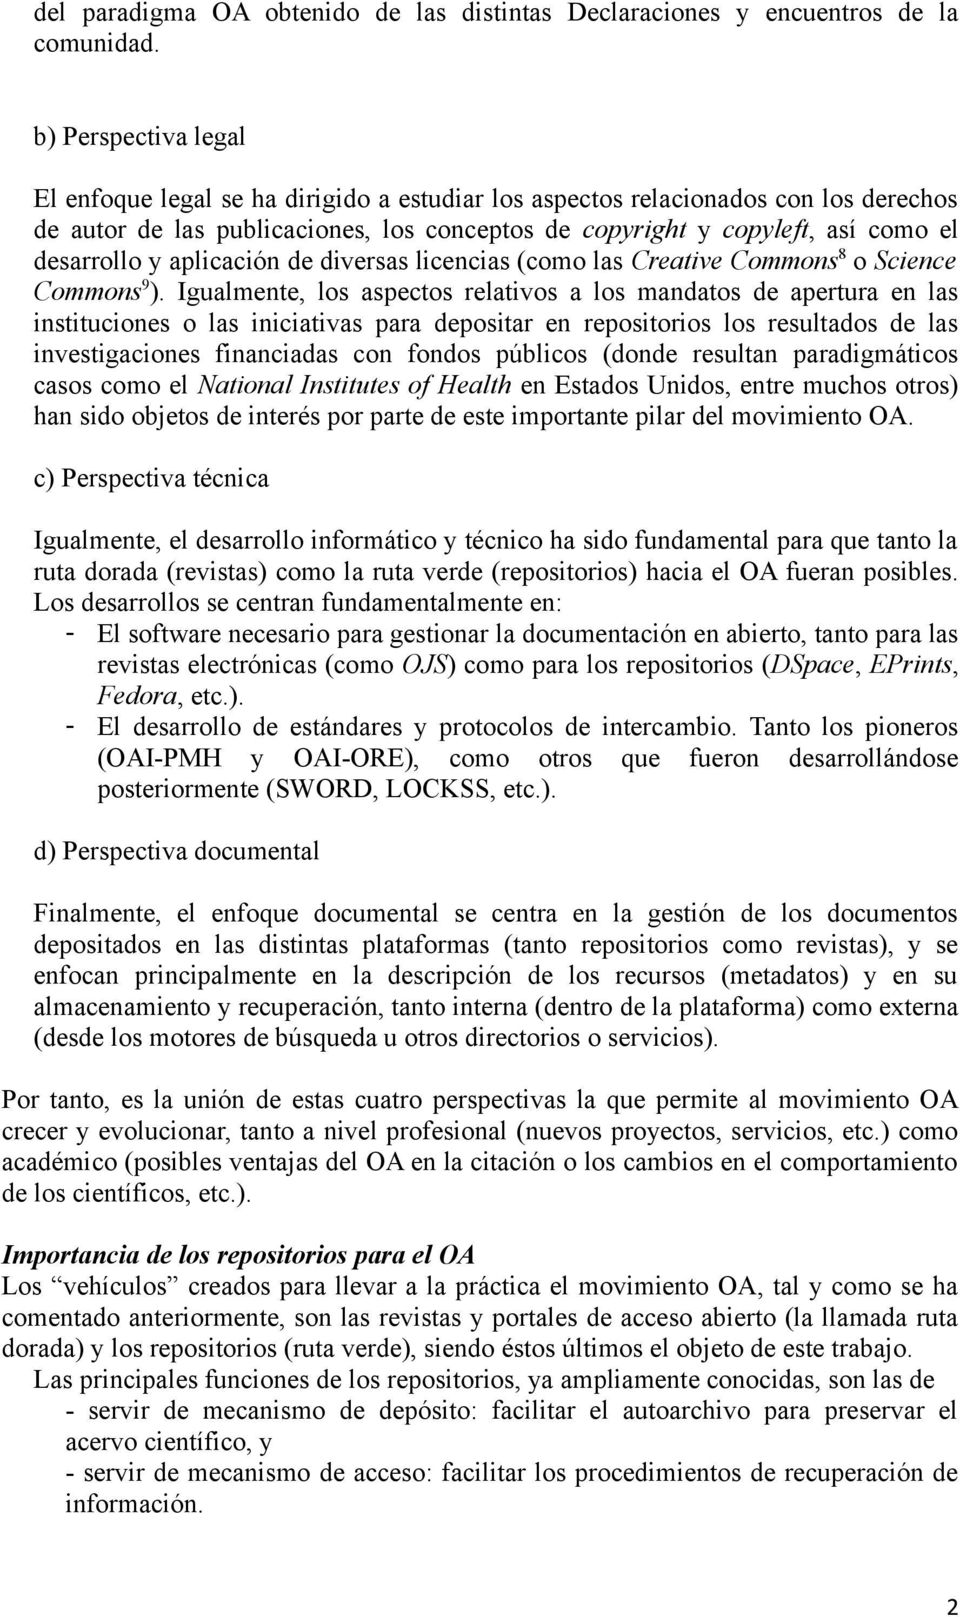 aplicación de diversas licencias (como las Creative Commons8 o Science Commons9).